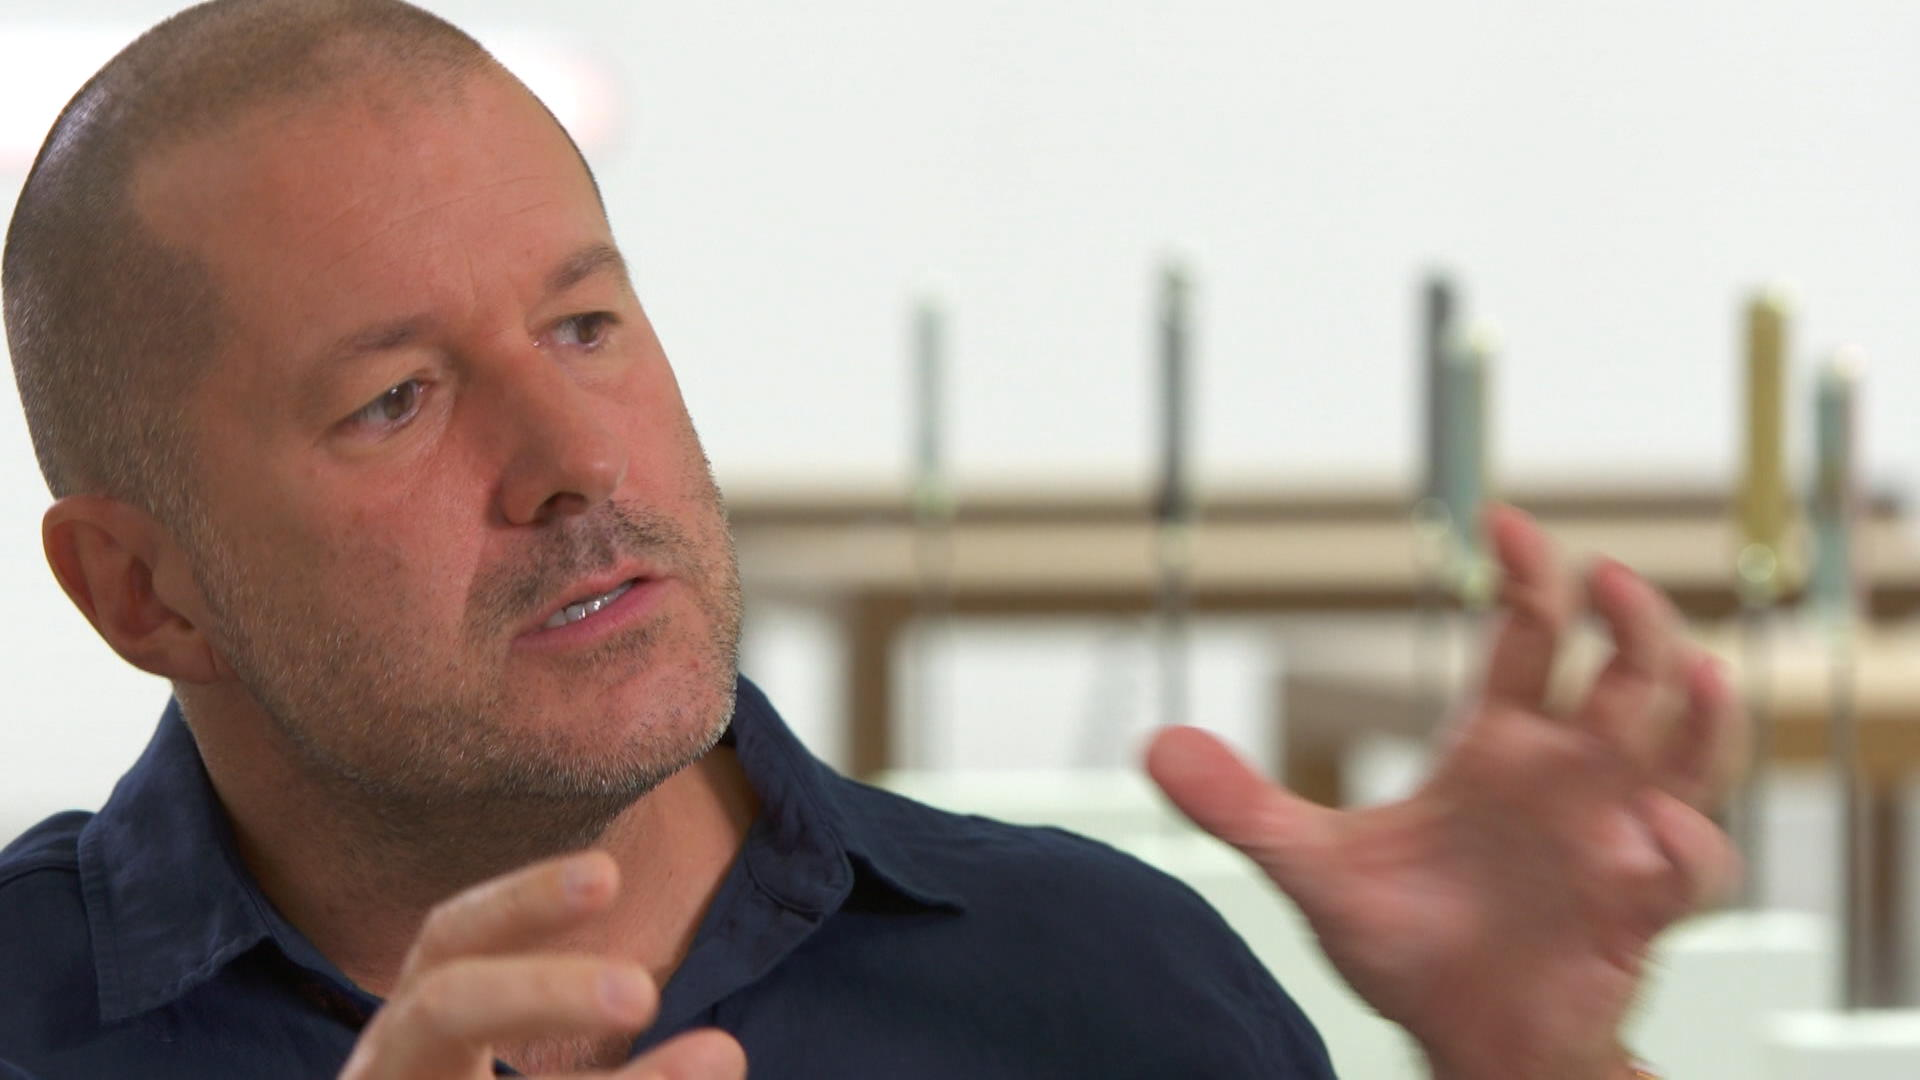 Jonny Ive about the early days at Apple and their own values